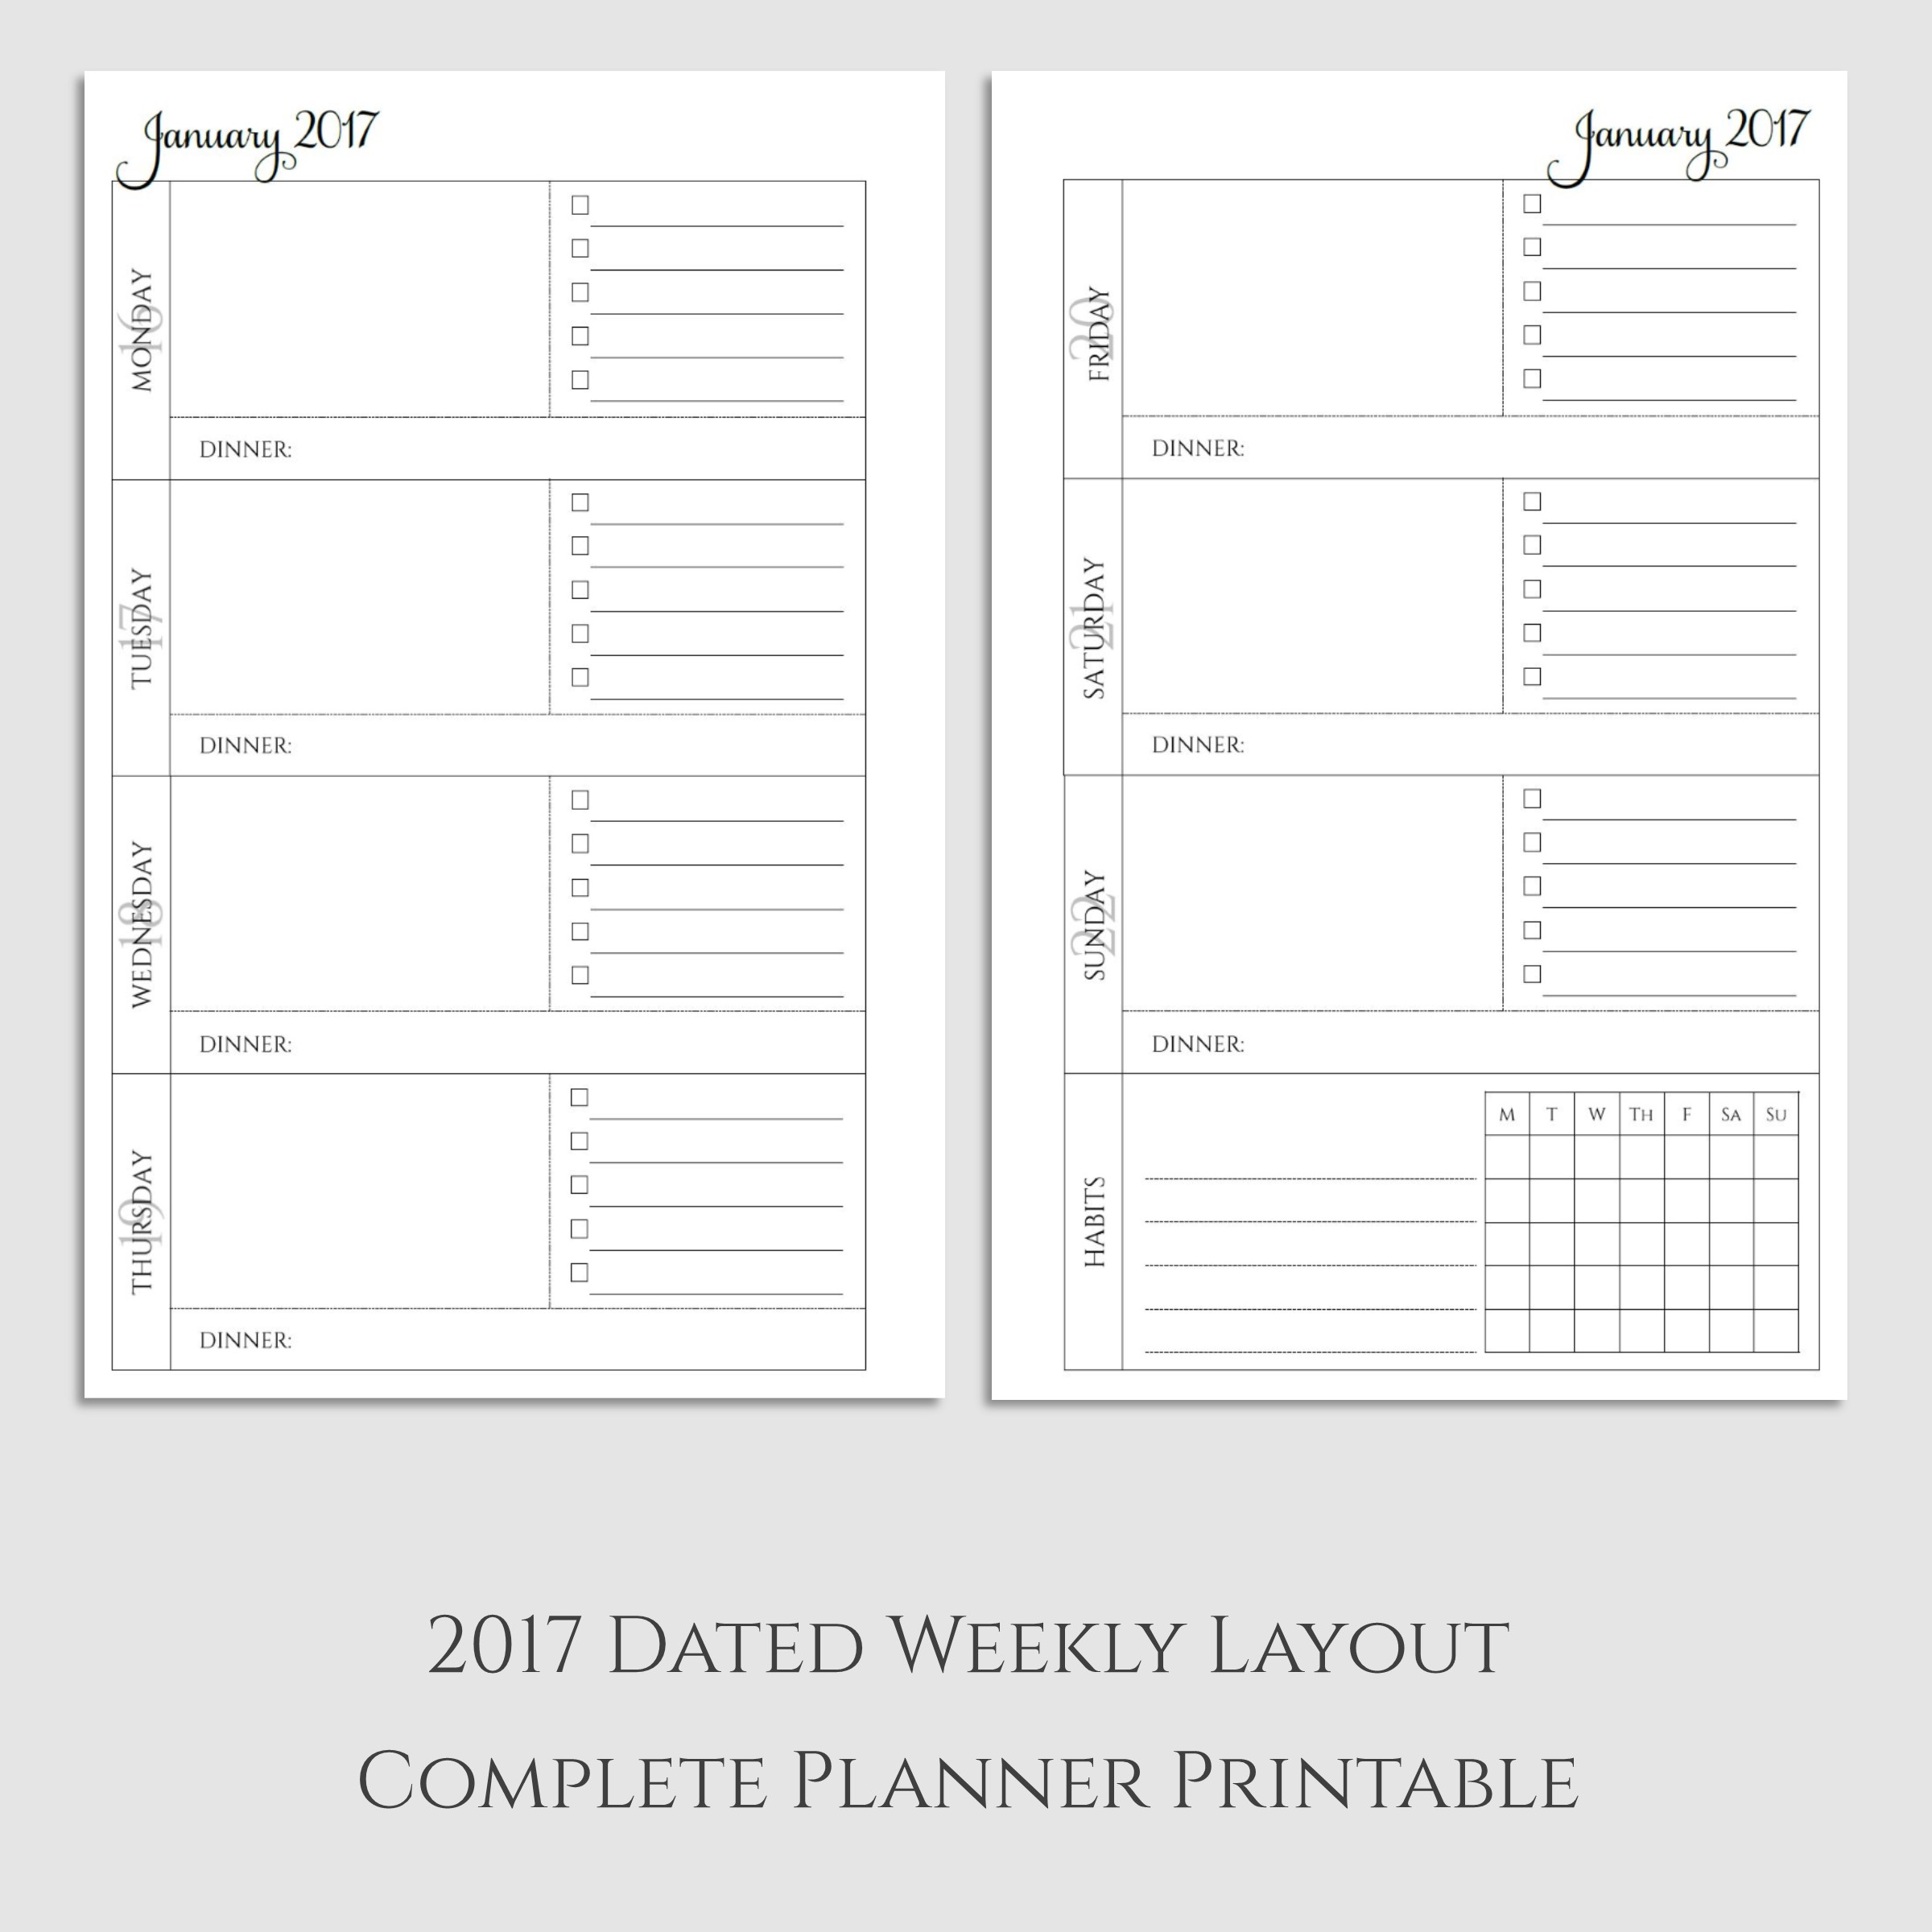 Complete 2017 Weekly Planner Printable with Dinner & Habit Tracker ...